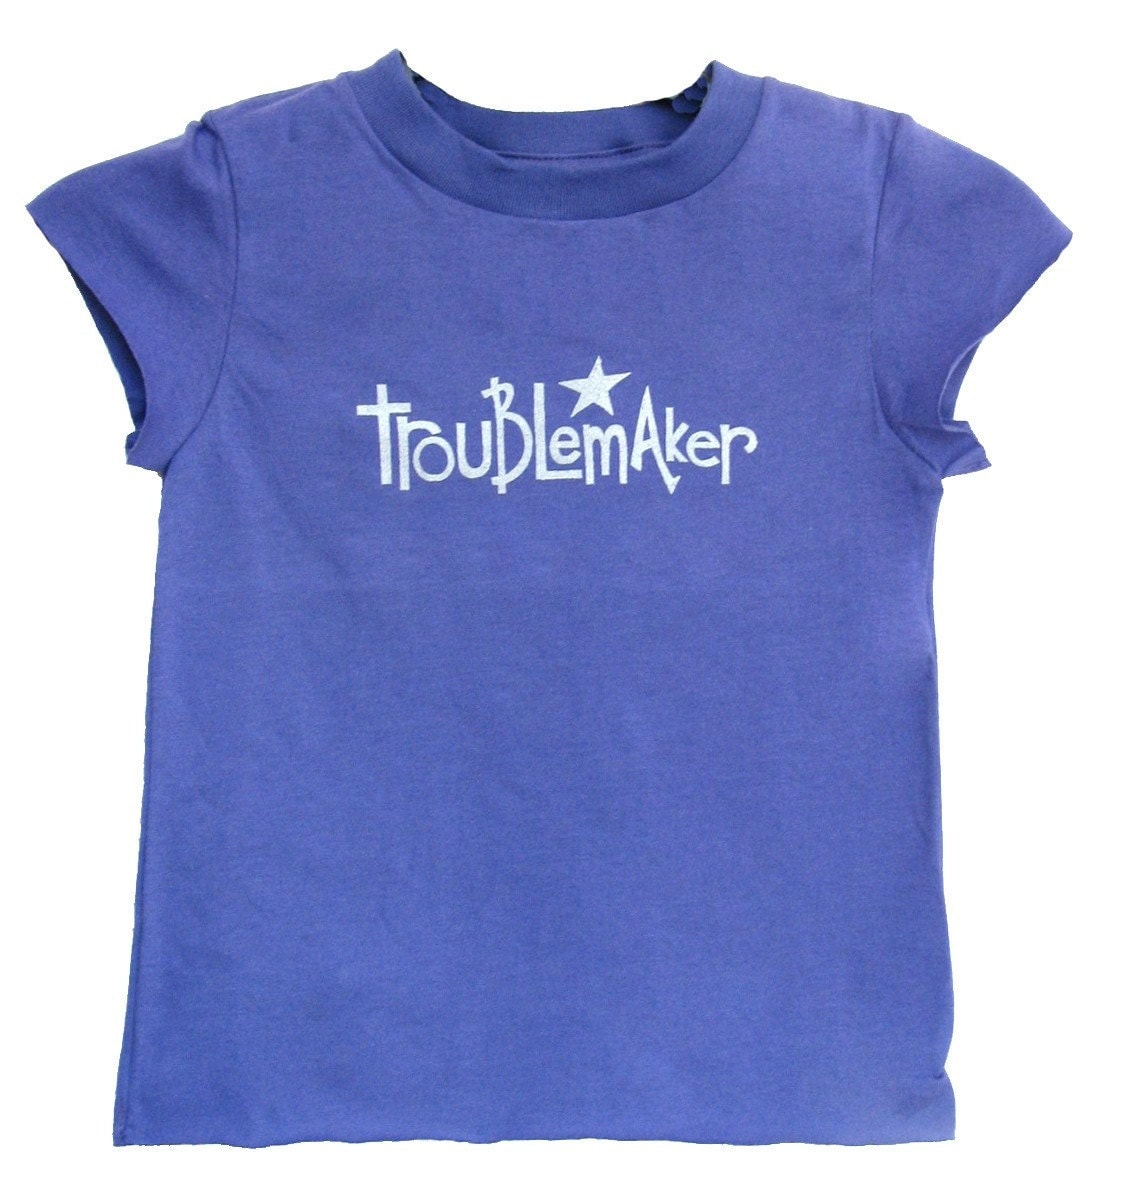 Trouble Maker Star Shirt (Child 2, 4, 6)